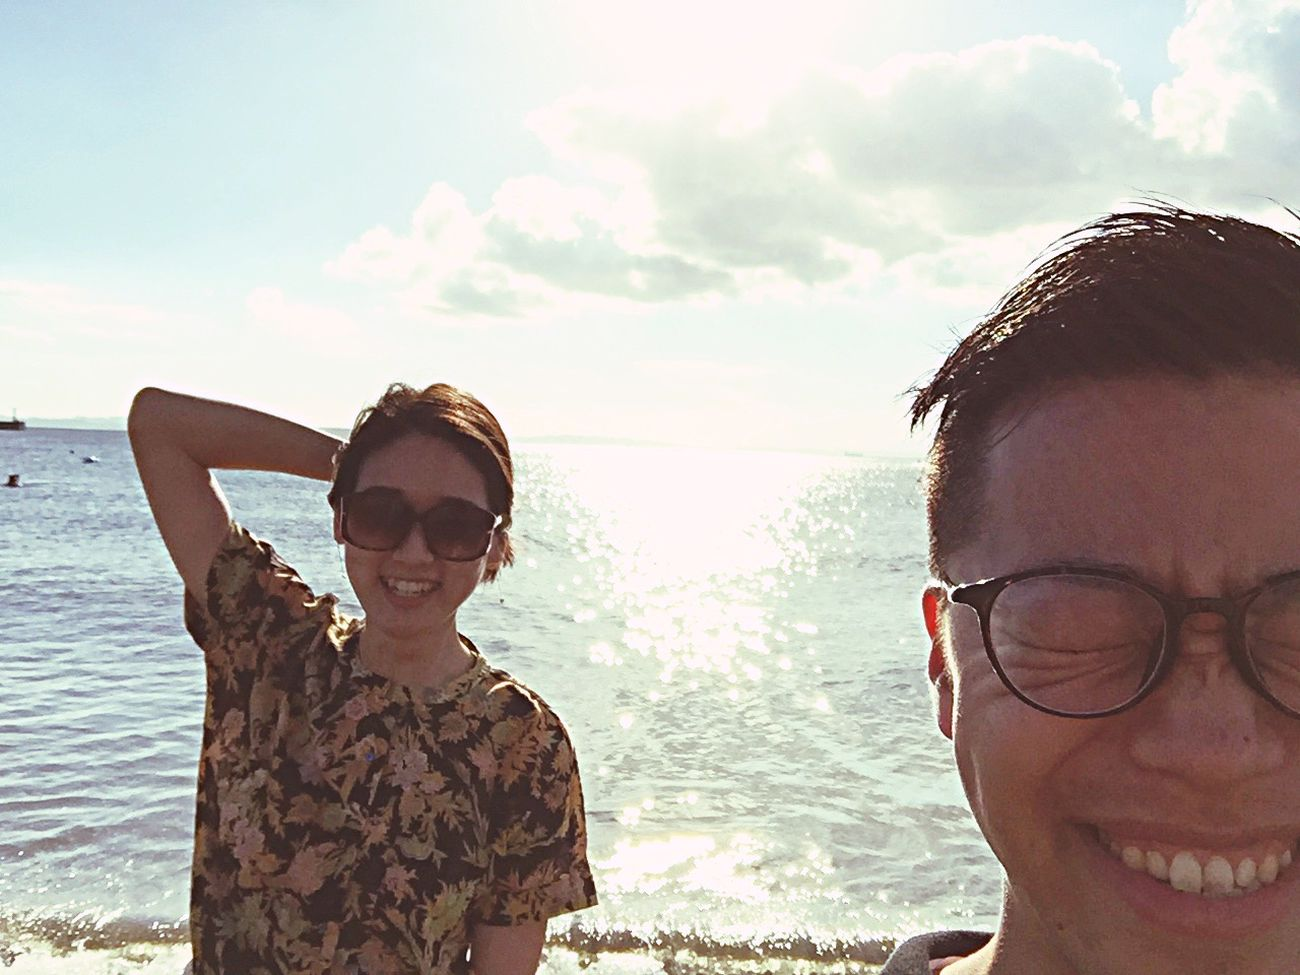 Seaside Sunlight Sea Selfies at Chiba Japan Scene